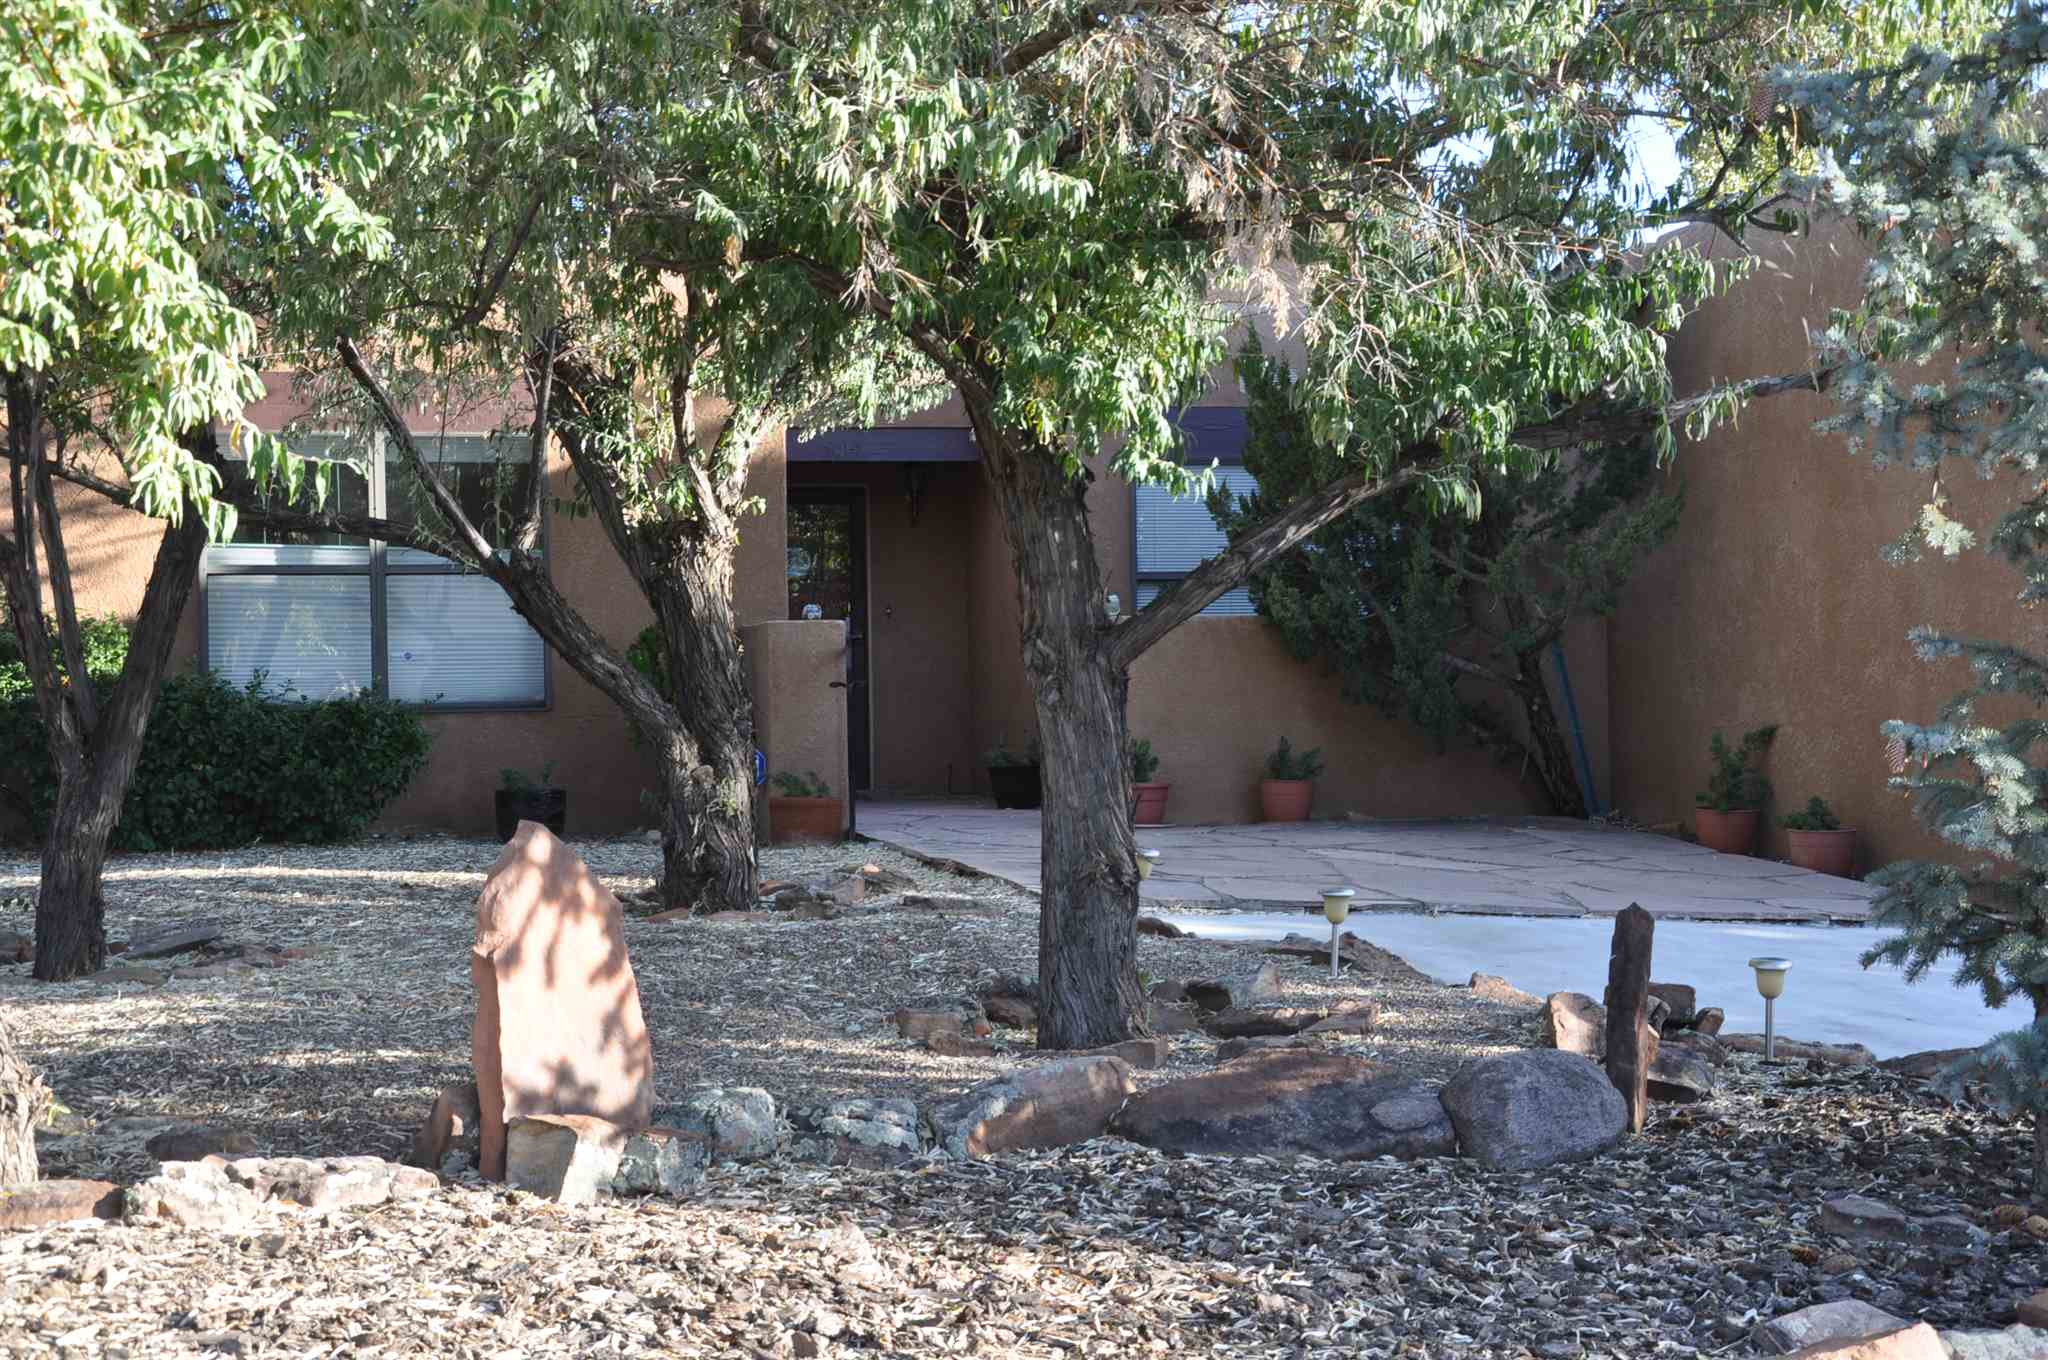 Sweet, Beautifully kept second home. 3 Bedrooms/ 2 Baths. Living Room has Kiva and high ceilings with beams. Quiet cul de sac location in Las Estancias. Easy manage landscaping and a lovely gazebo. Easy to show.